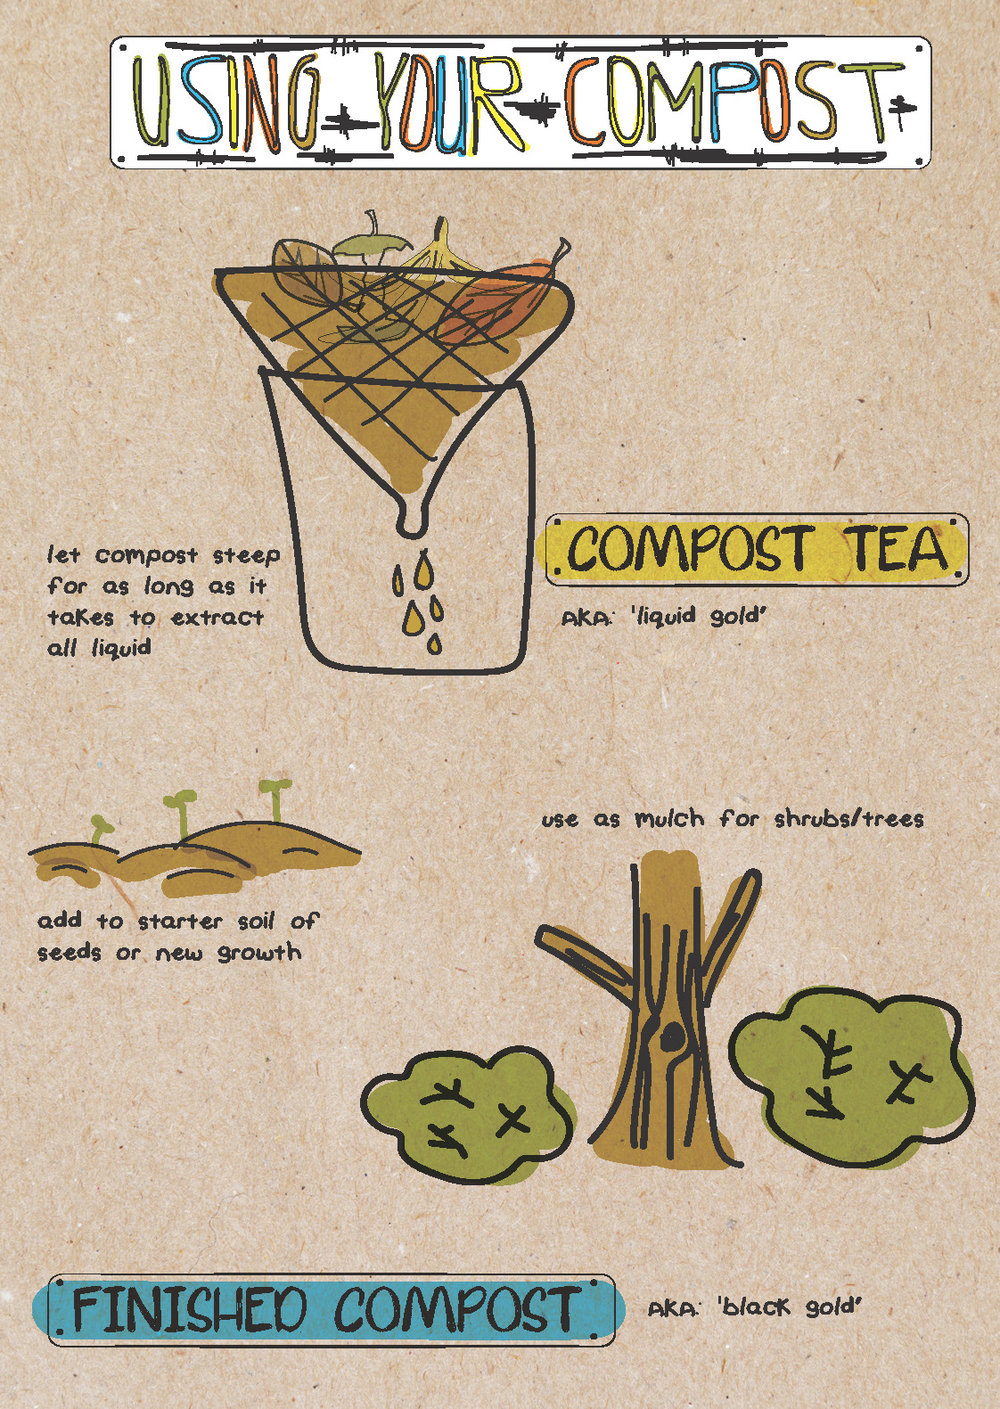 Composting Infographic 2 of 2